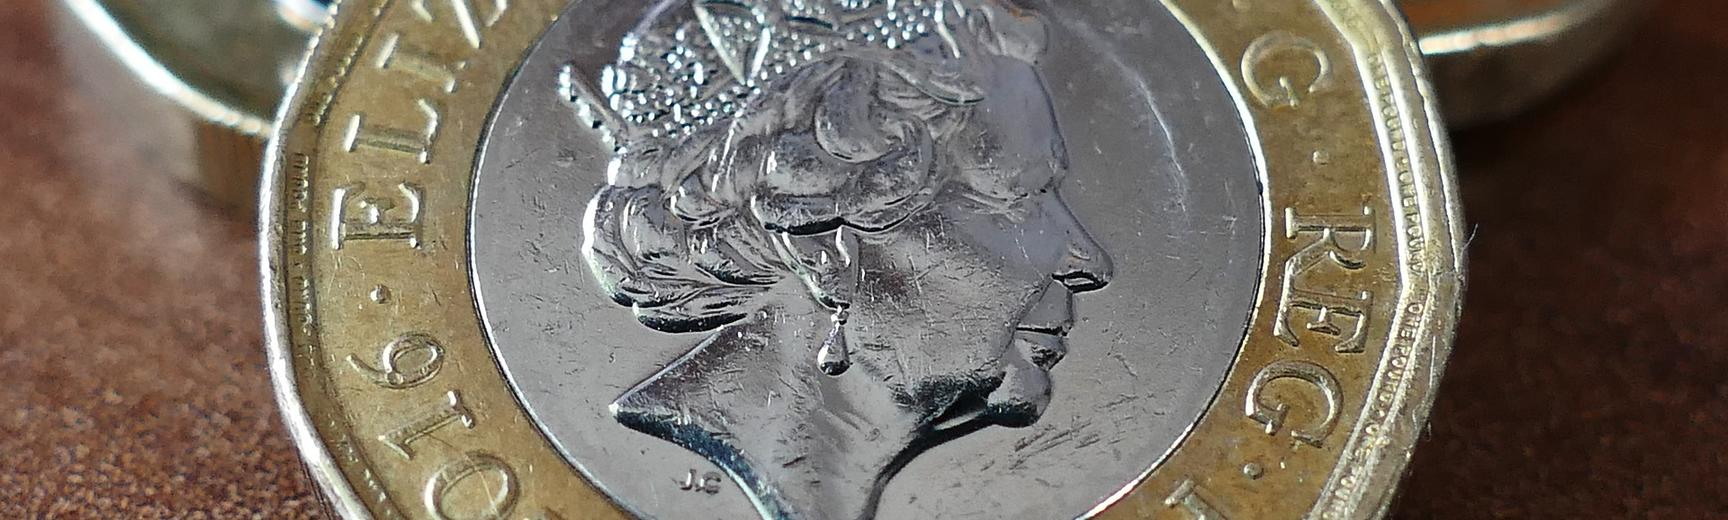 Close up photograph of a pile of shiny pound coins